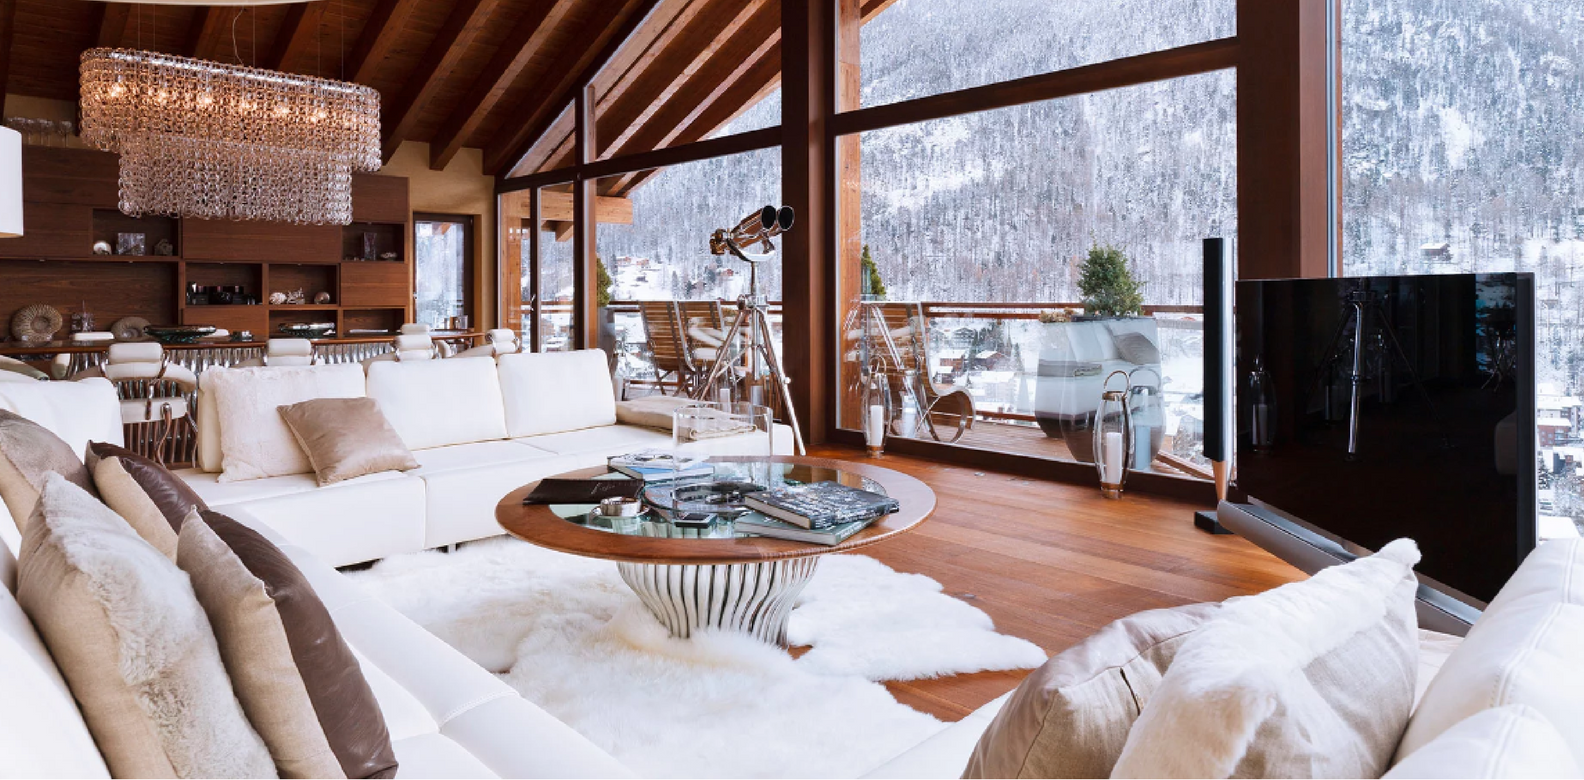 Ski Chalet Interior Design 7 luxury ski chalets in europe to elevate your next ski